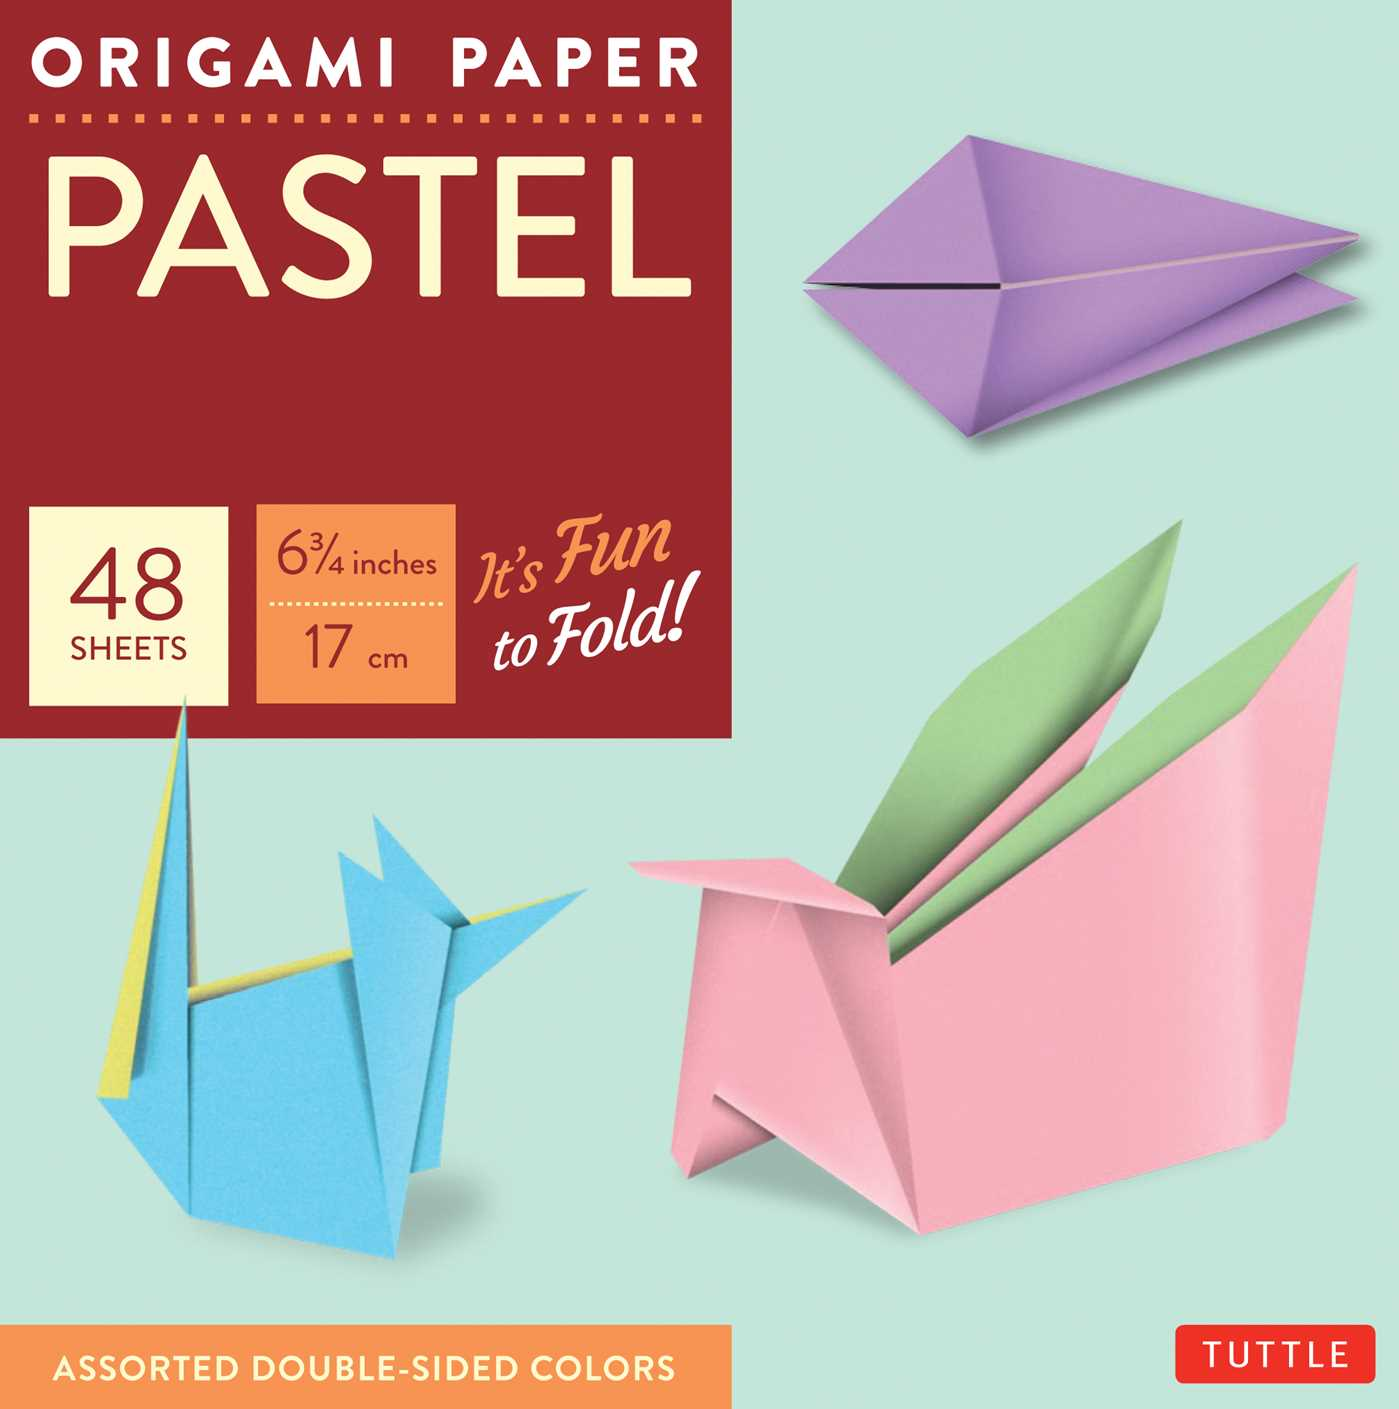 "Origami Paper - Pastel Colors - 6 3/4"" - 48 Sheets : Tuttle Origami Paper: High-Quality Origami Sheets Printed with 6 Different Colors: Instructions for 6 Projects Included"